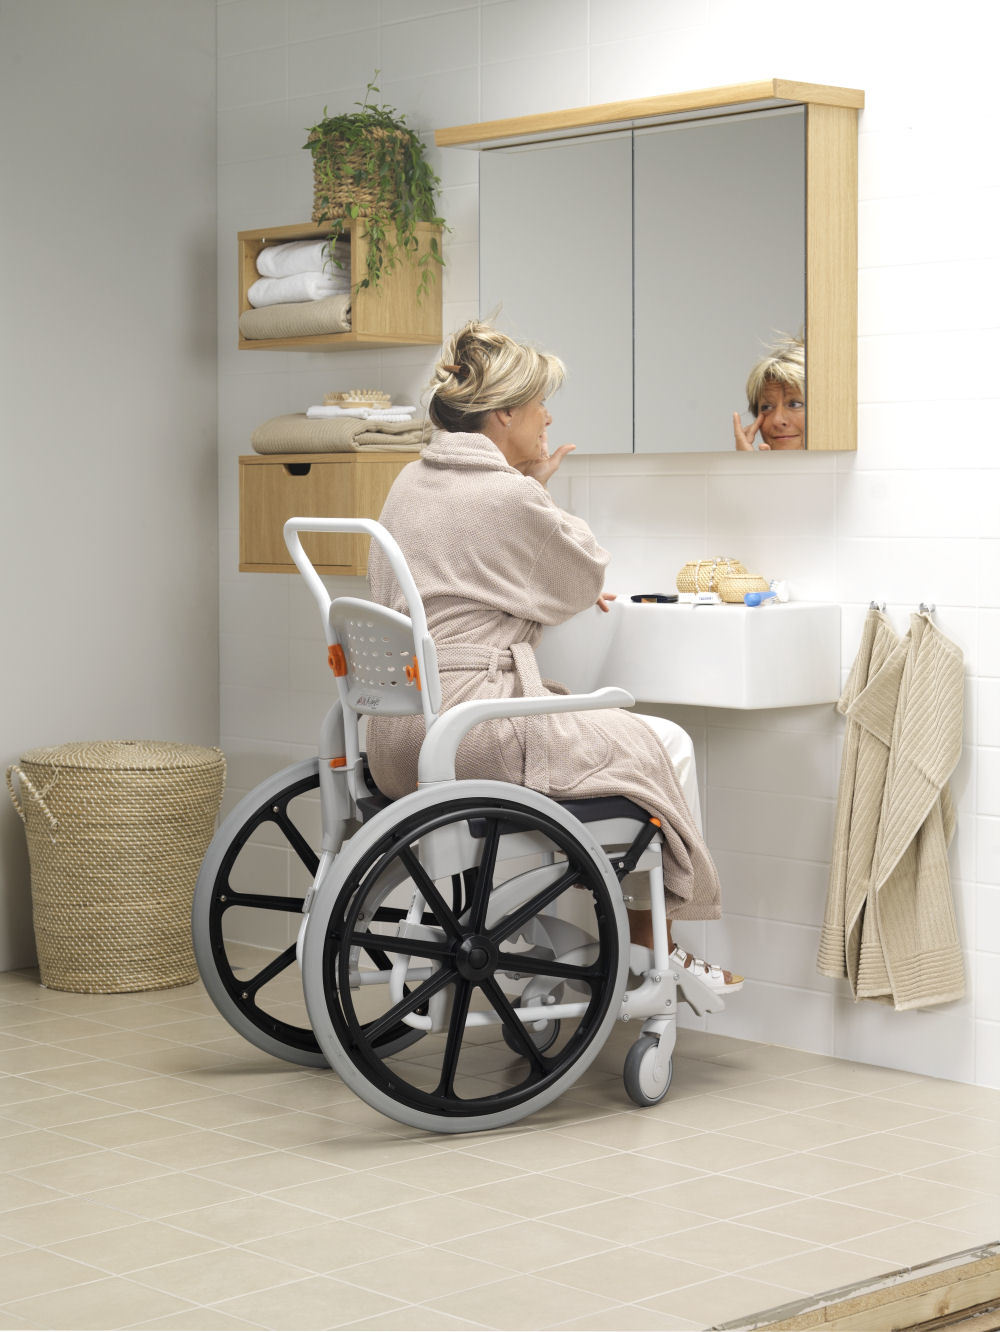 etac clean mobile shower commode chair 55cm self propelled